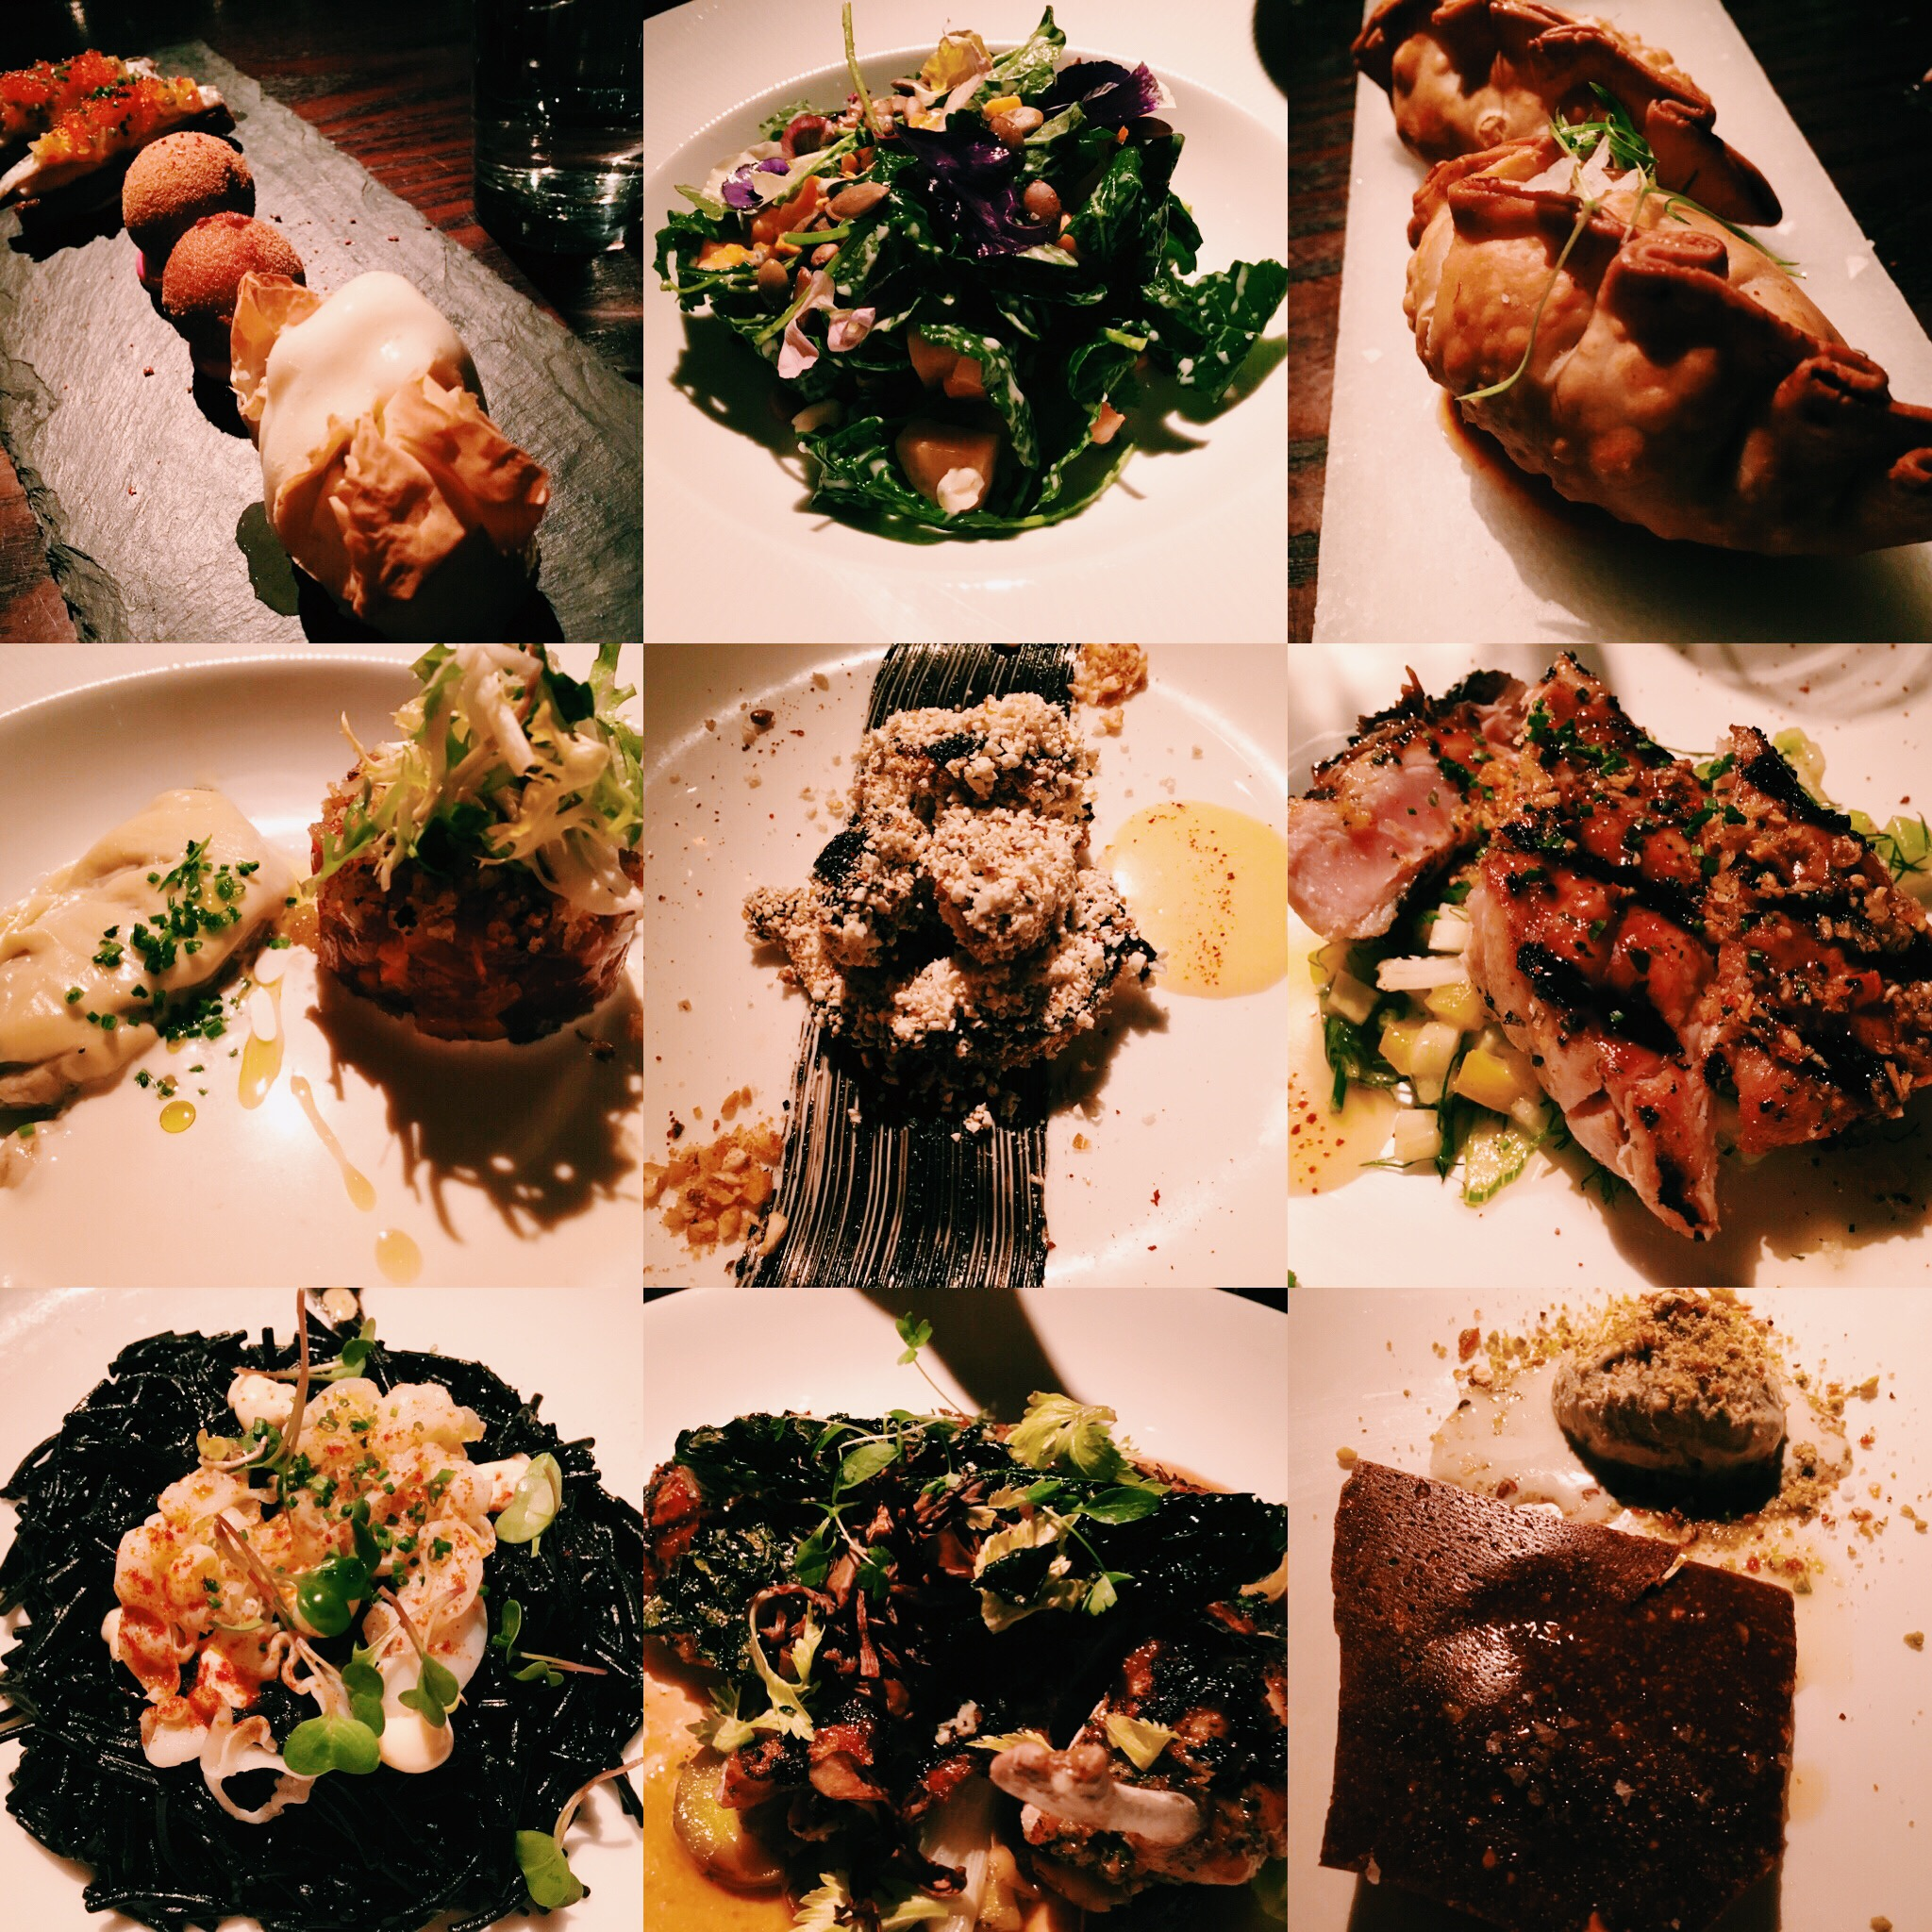 From left to right:    Anchos Jardinera, smoked chicken croquetas and queso mozarabe/Butternut squash, blue cheese, baby kale, toasted seeds with Chardonnay vinaigrette/Spicy shrimp and fish empanadas/Oyster in creme fraiche with tuna tartare/Popcorn crushed baby octopus, spicy pepper squid ink aioli and preserved lemon/Grilled yellow fish tuna skirt steak/Squid ink pasta with shrimp/Grilled chicken, wild mushrooms, judion beans with a vinegar reduction/Pistachio ice cream, crushed nuts and dark chocolate.